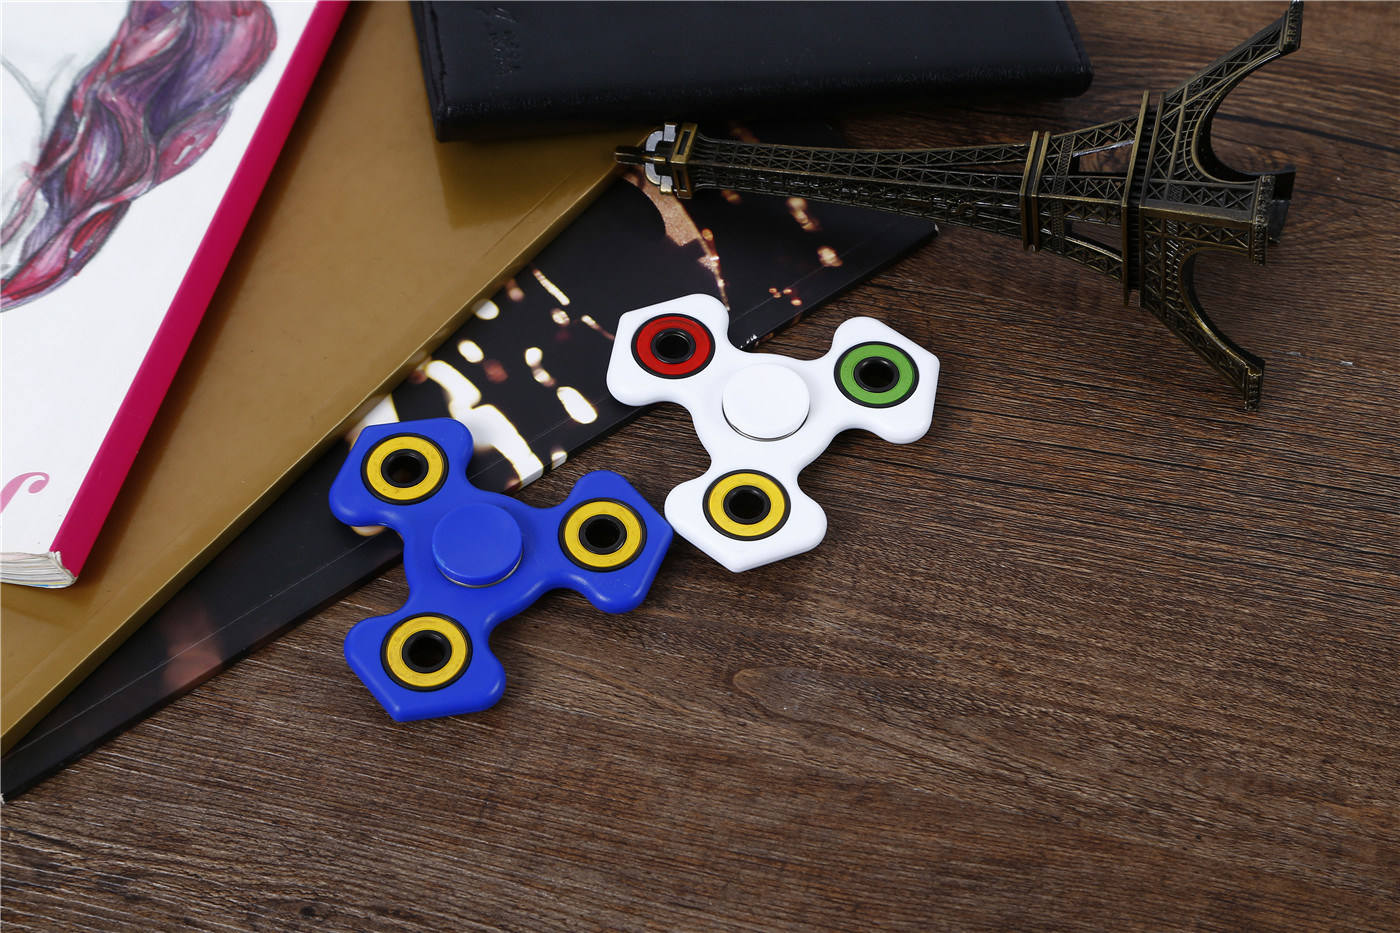 New Spinner Anti Stress Hand Spinner Toy, Spinning More Than Two Munites Small Finger Toy